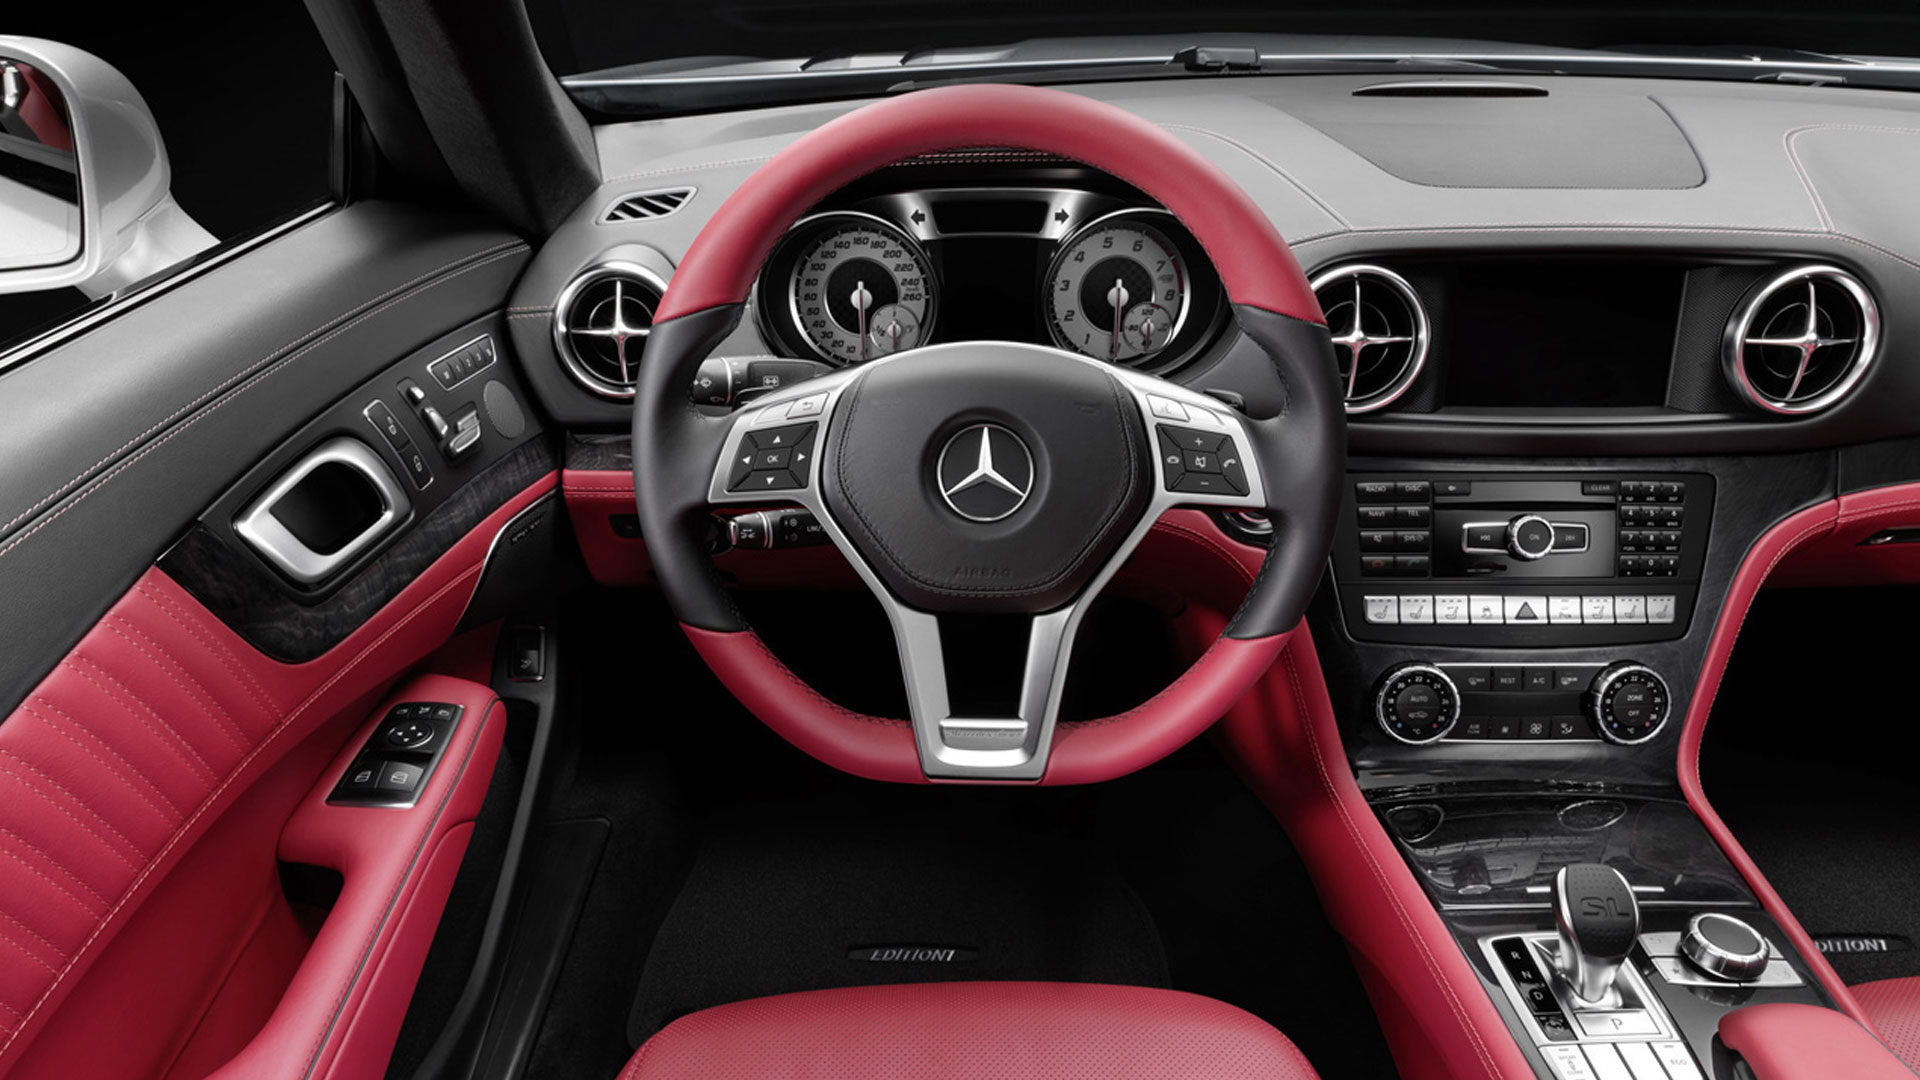 Awesome Mercedes Interior Wallpaper 45820 1920x1080px